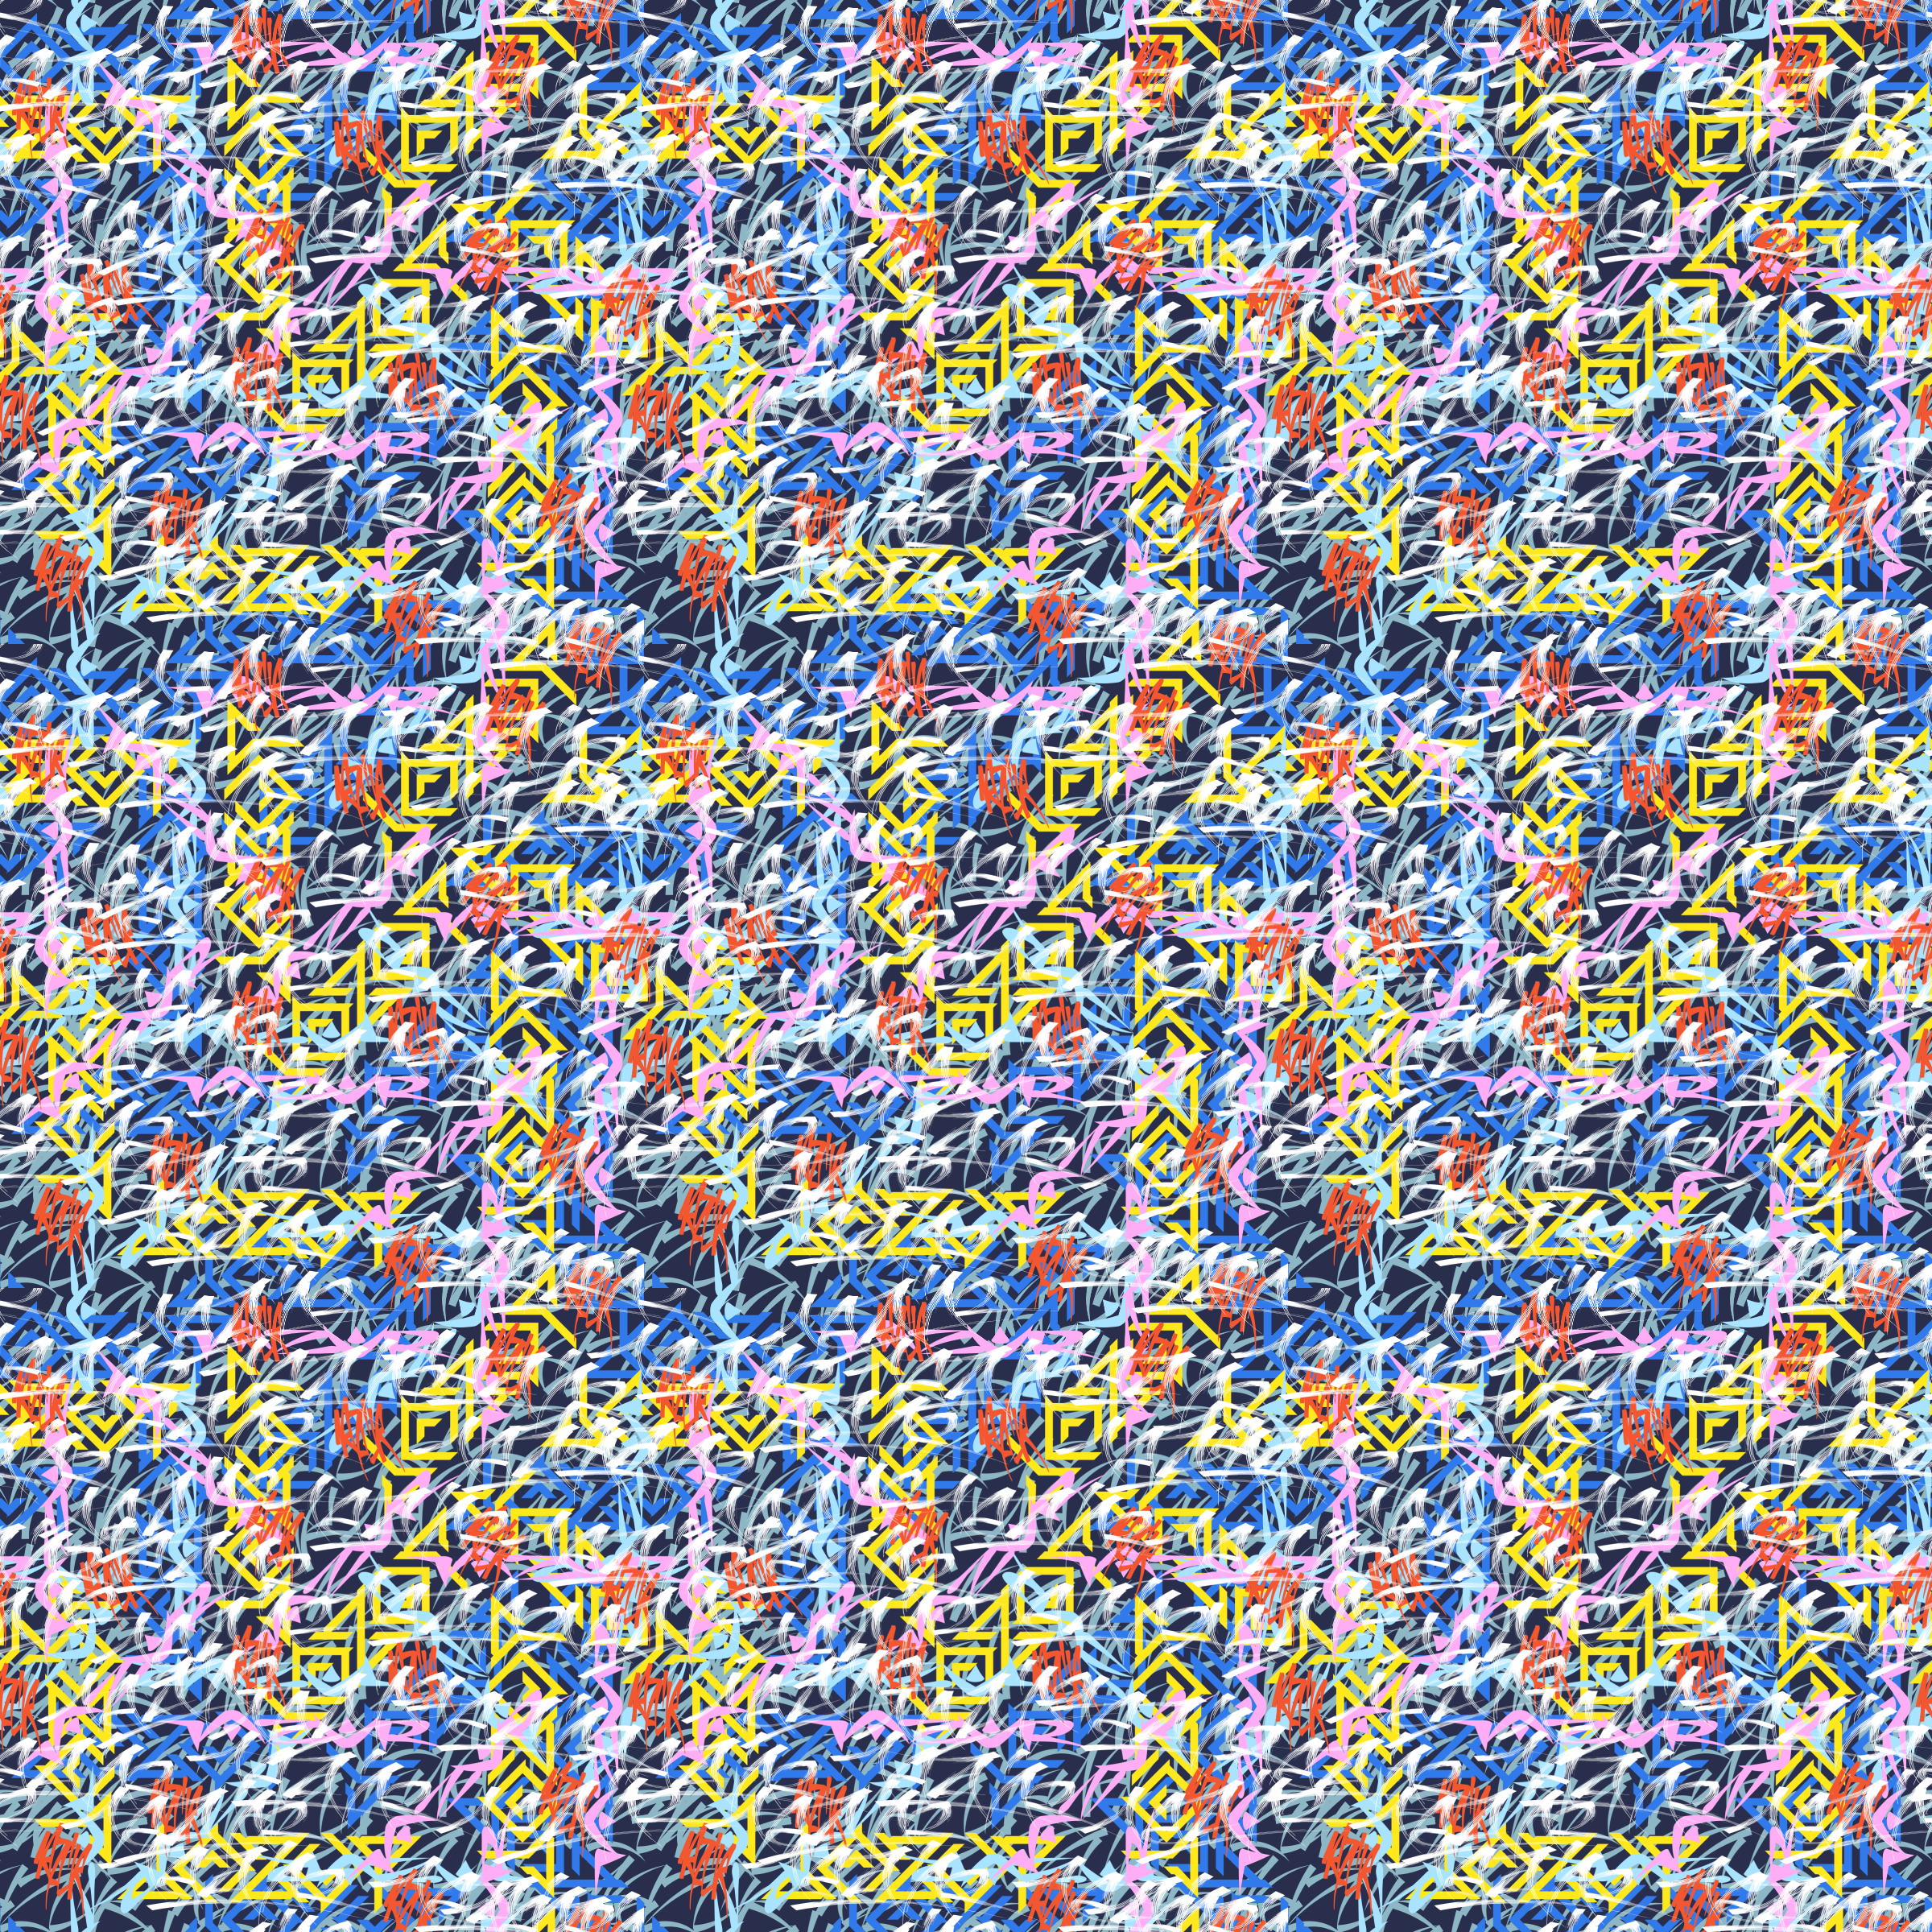 tileable tag pattern 6 by Lazur URH